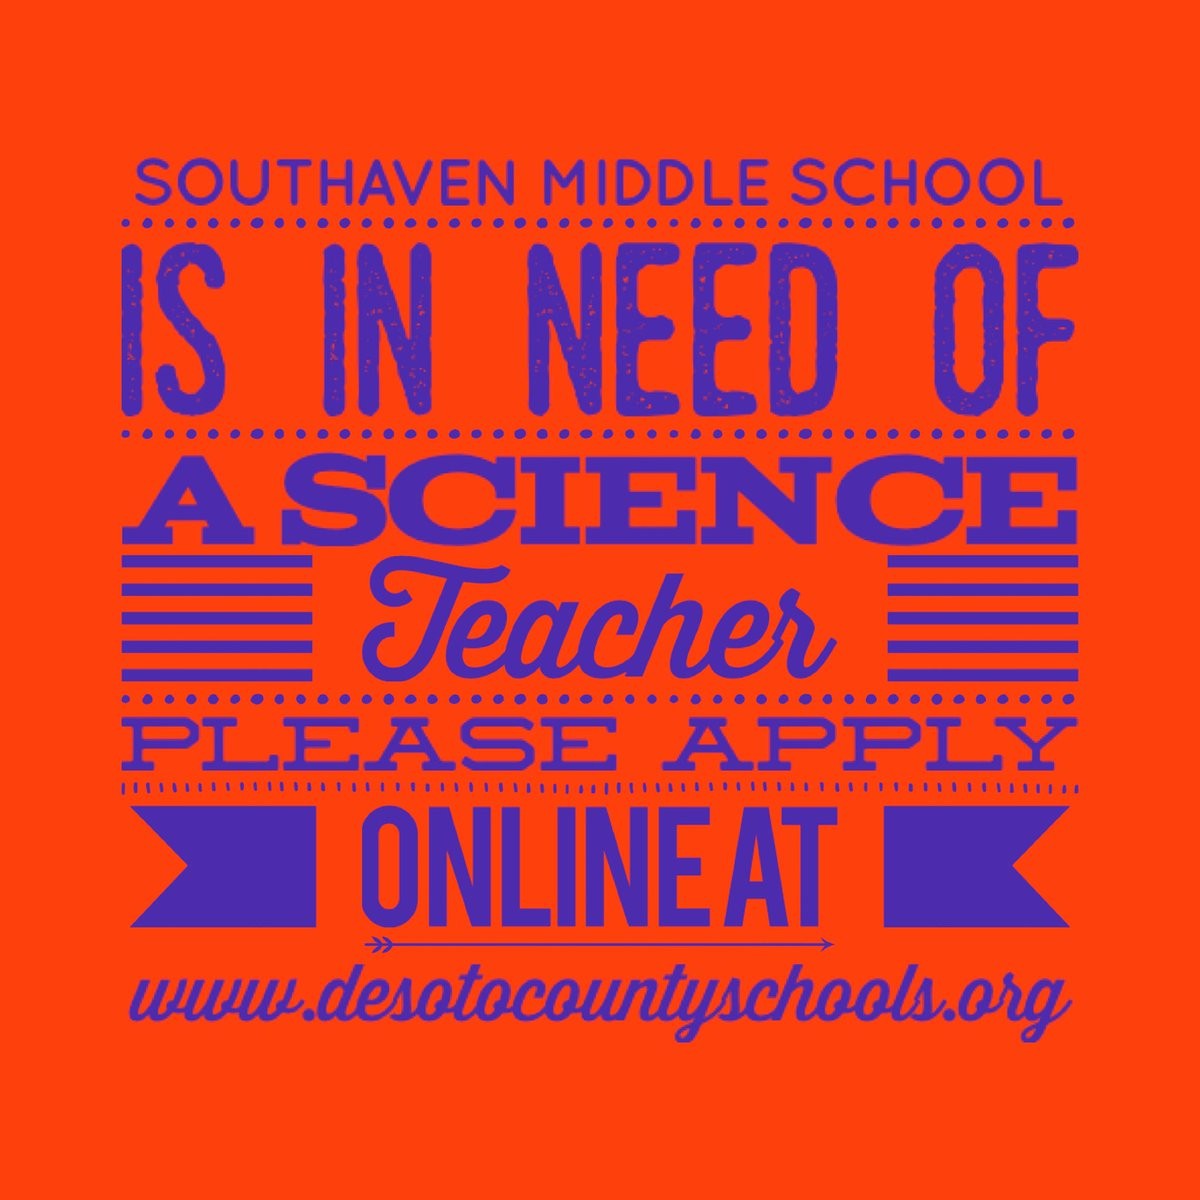 #TeamDCS #RaisetheBar